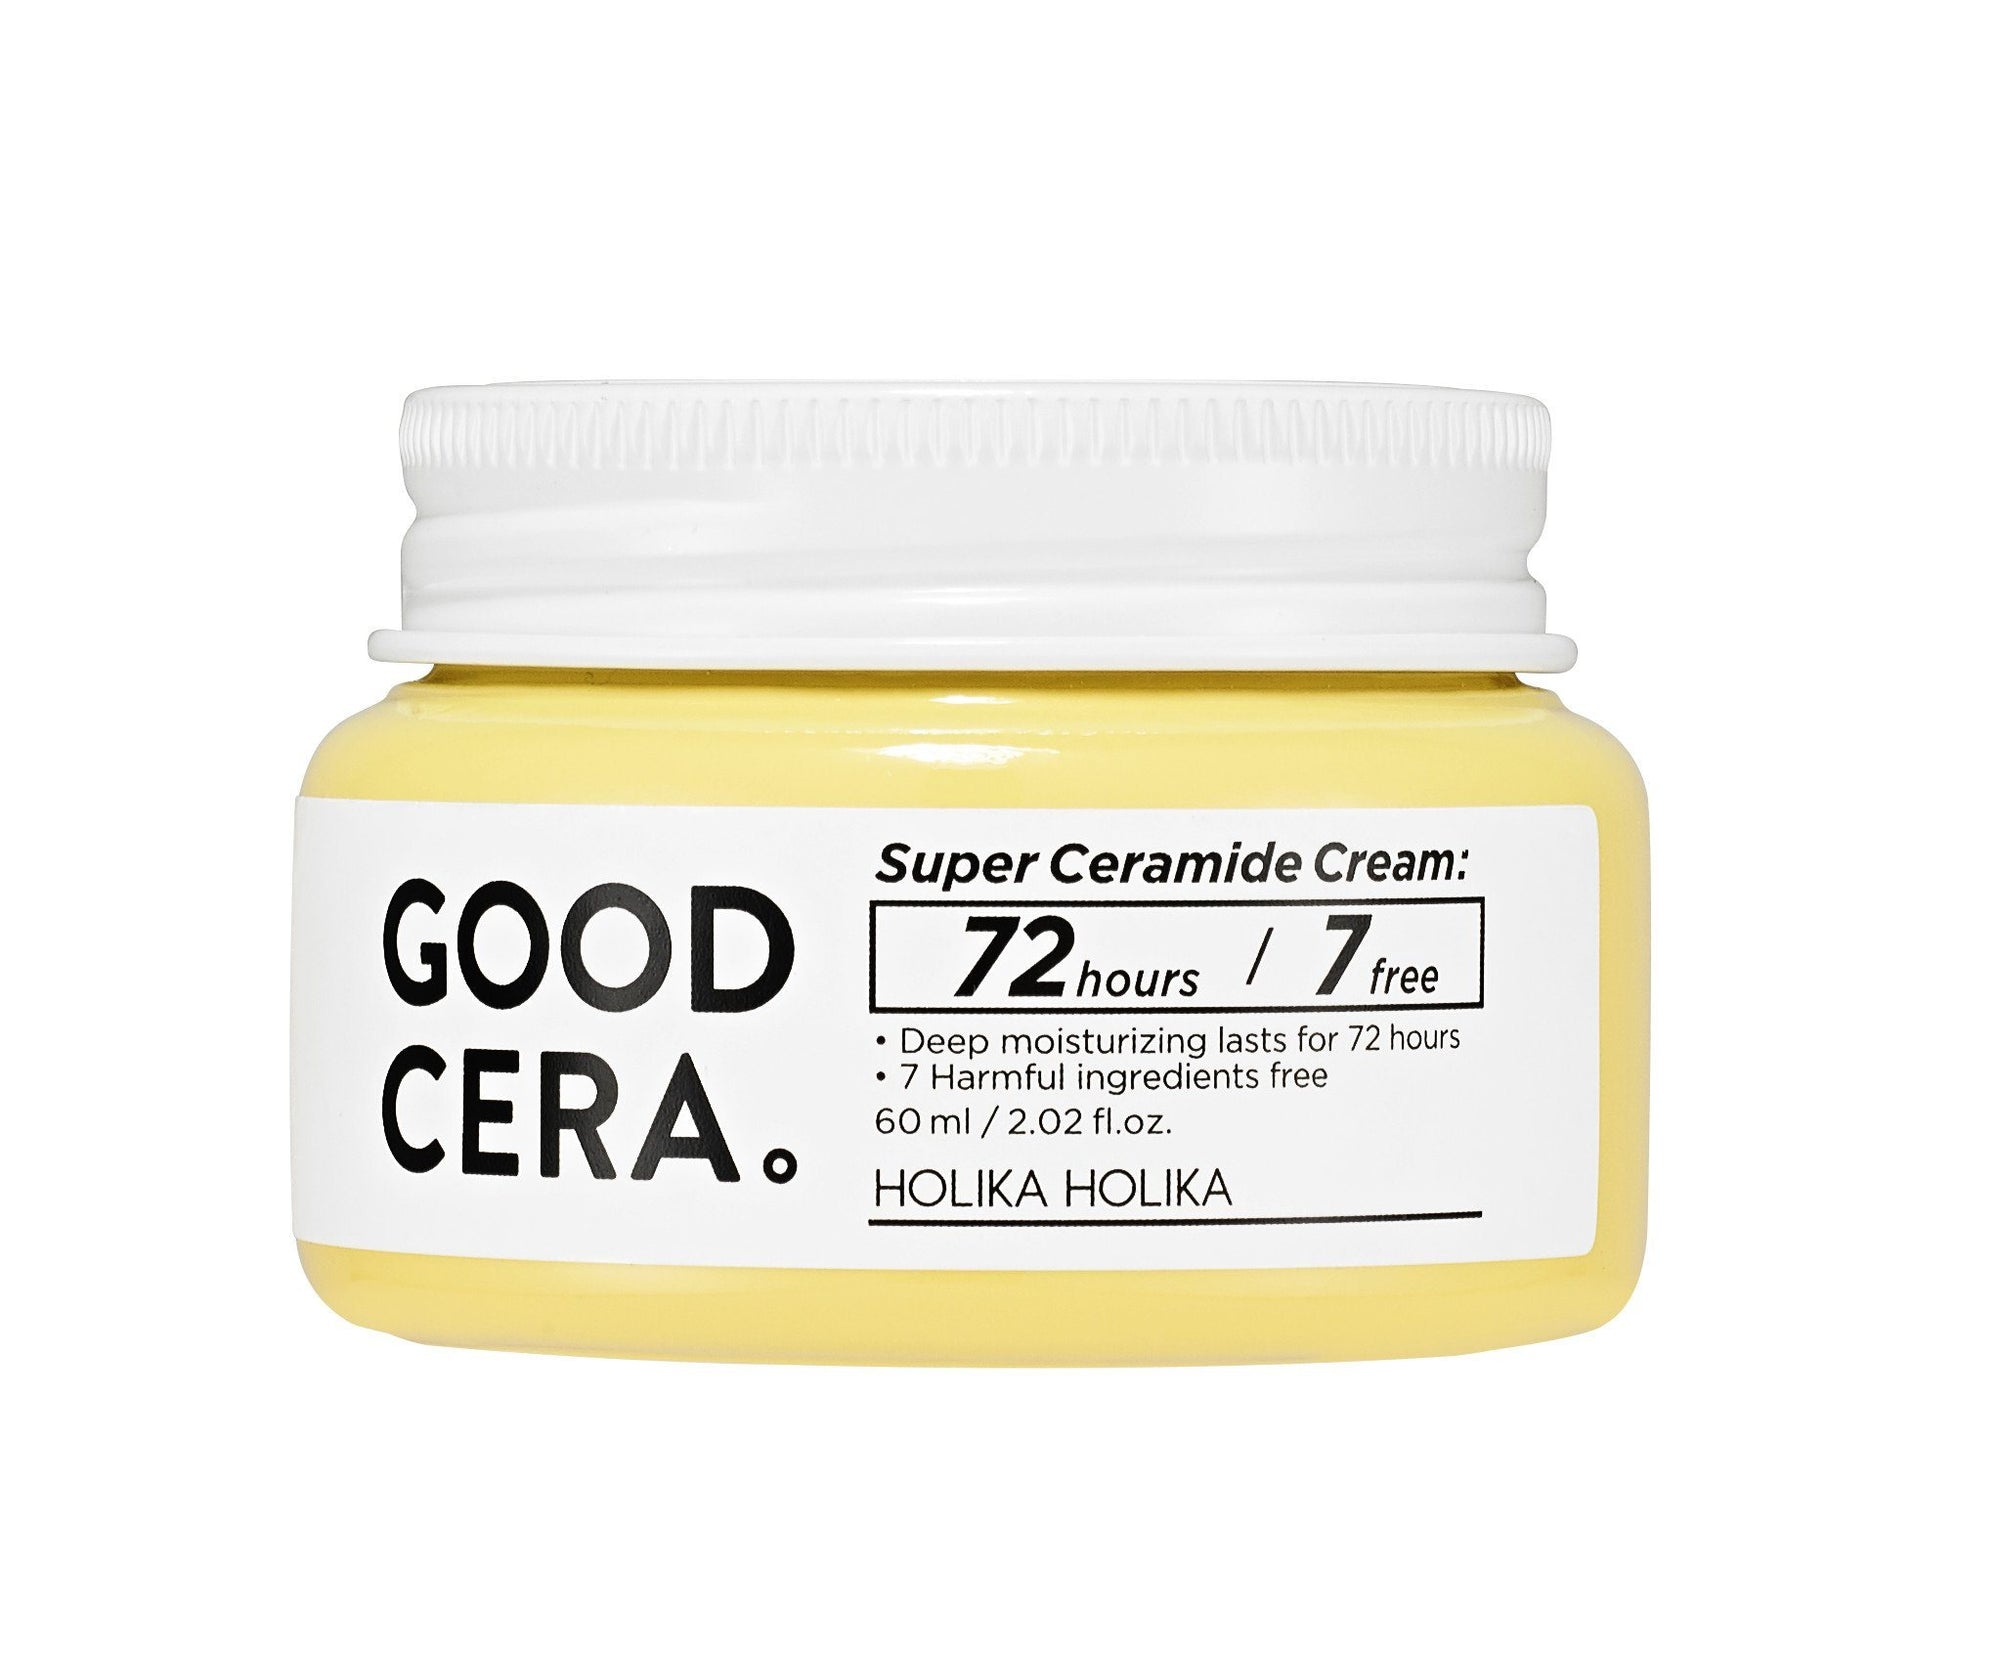 Health & Beauty > Personal Care > Cosmetics > Skin Care > Lotion & Moisturizer - GOOD CERA Super Ceramide Cream Krem Do Twarzy 60 Ml